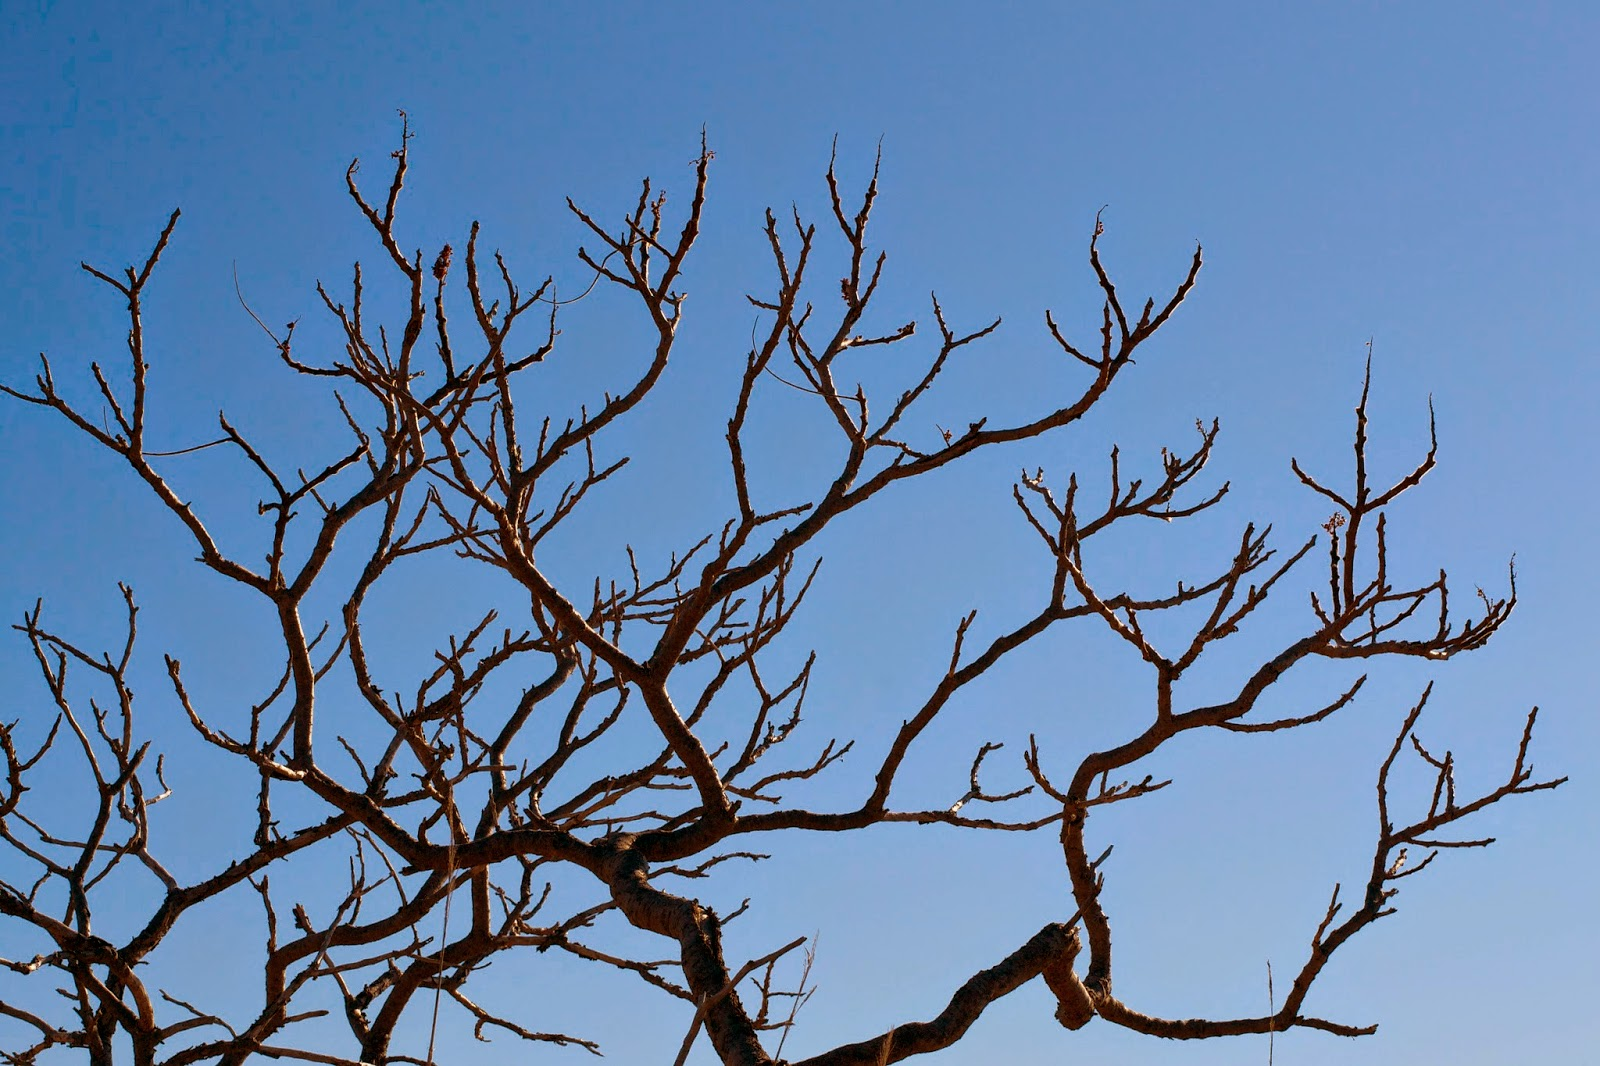 Naked tree against the blue sky.